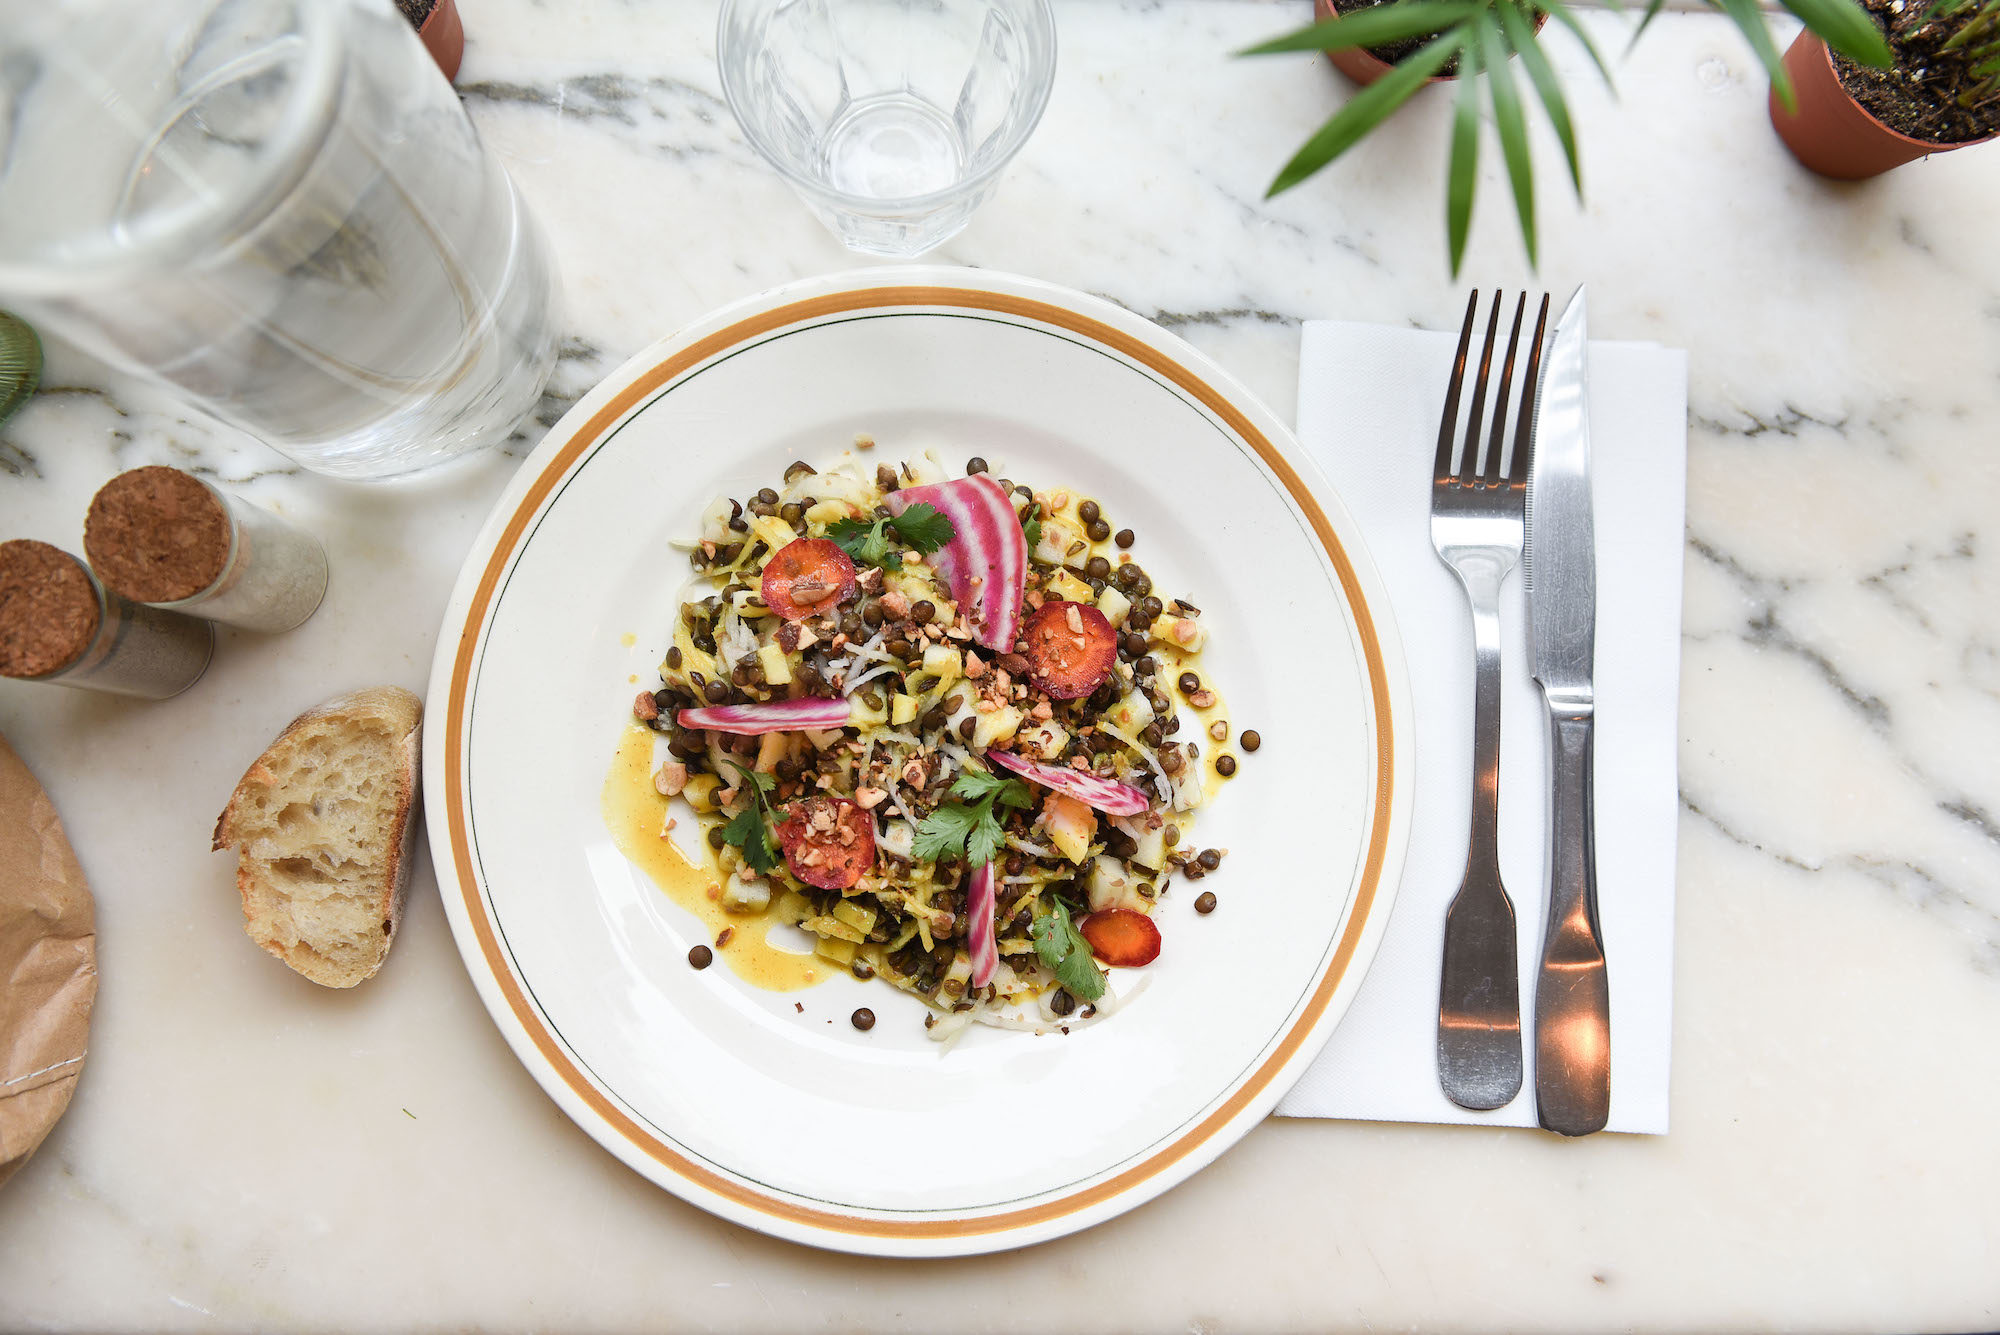 Where to go for a gluten-free lunch in Paris and taste fresh salads like this one.